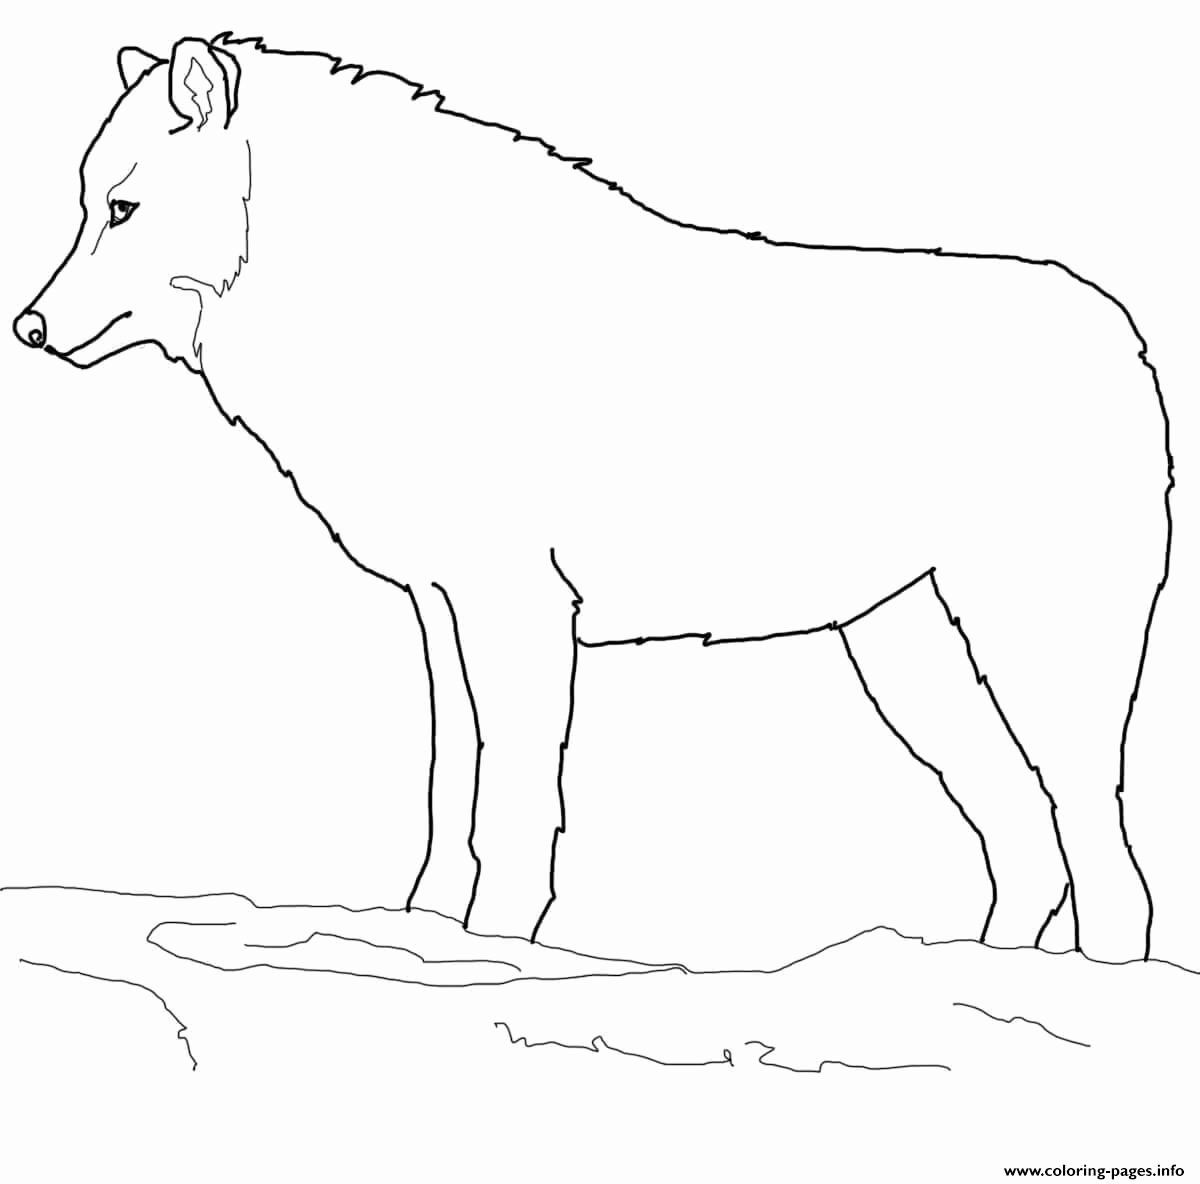 Arctic Wolf Coloring Pages Best Of Arctic Wolf Coloring Pages Printable In 2020 Arctic Wolf Artic Wolf Coloring Pages